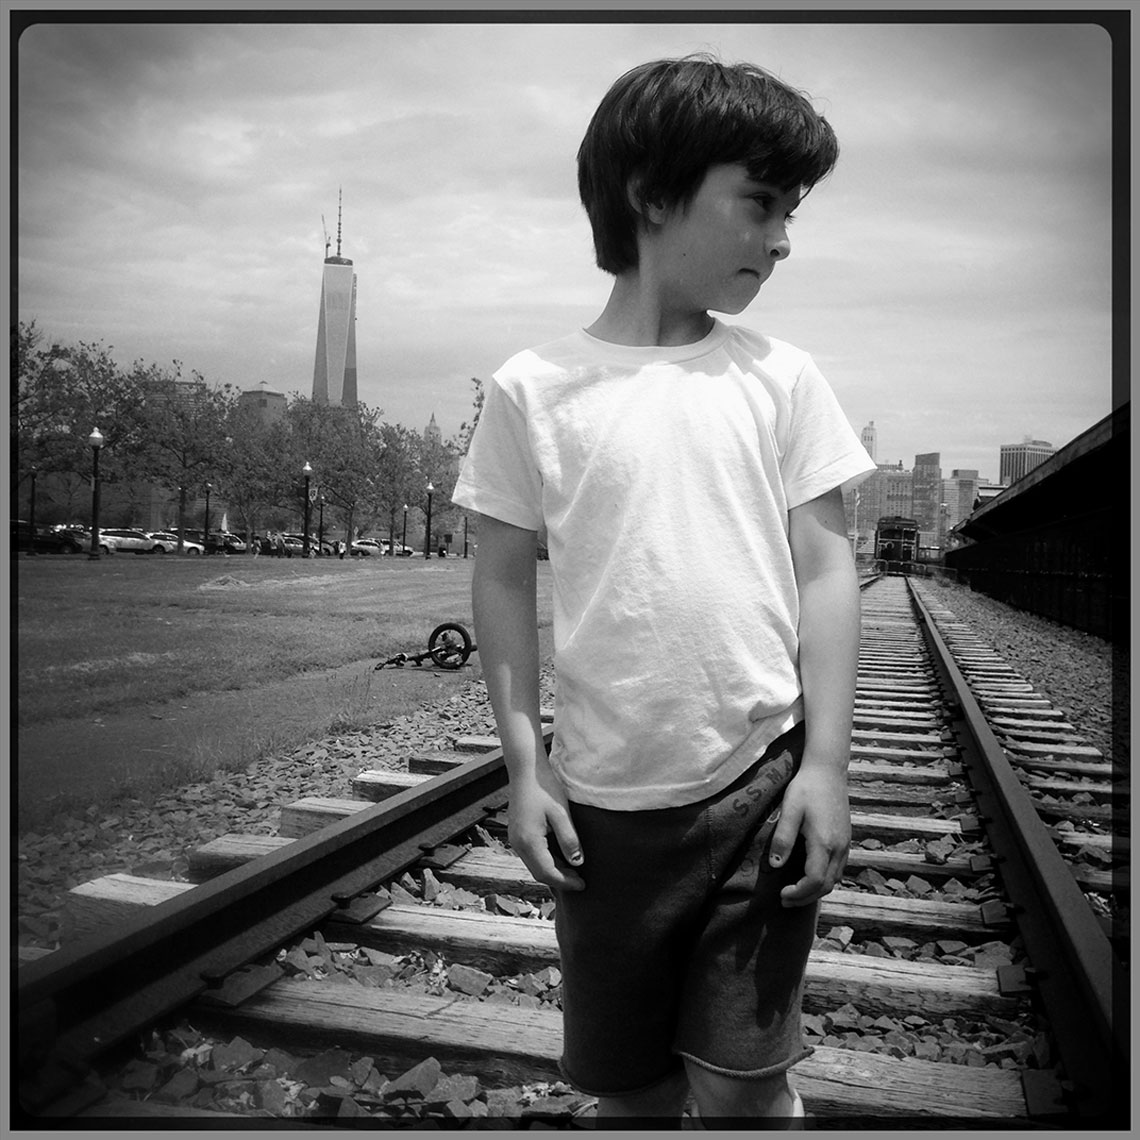 Boy on Train Tracks